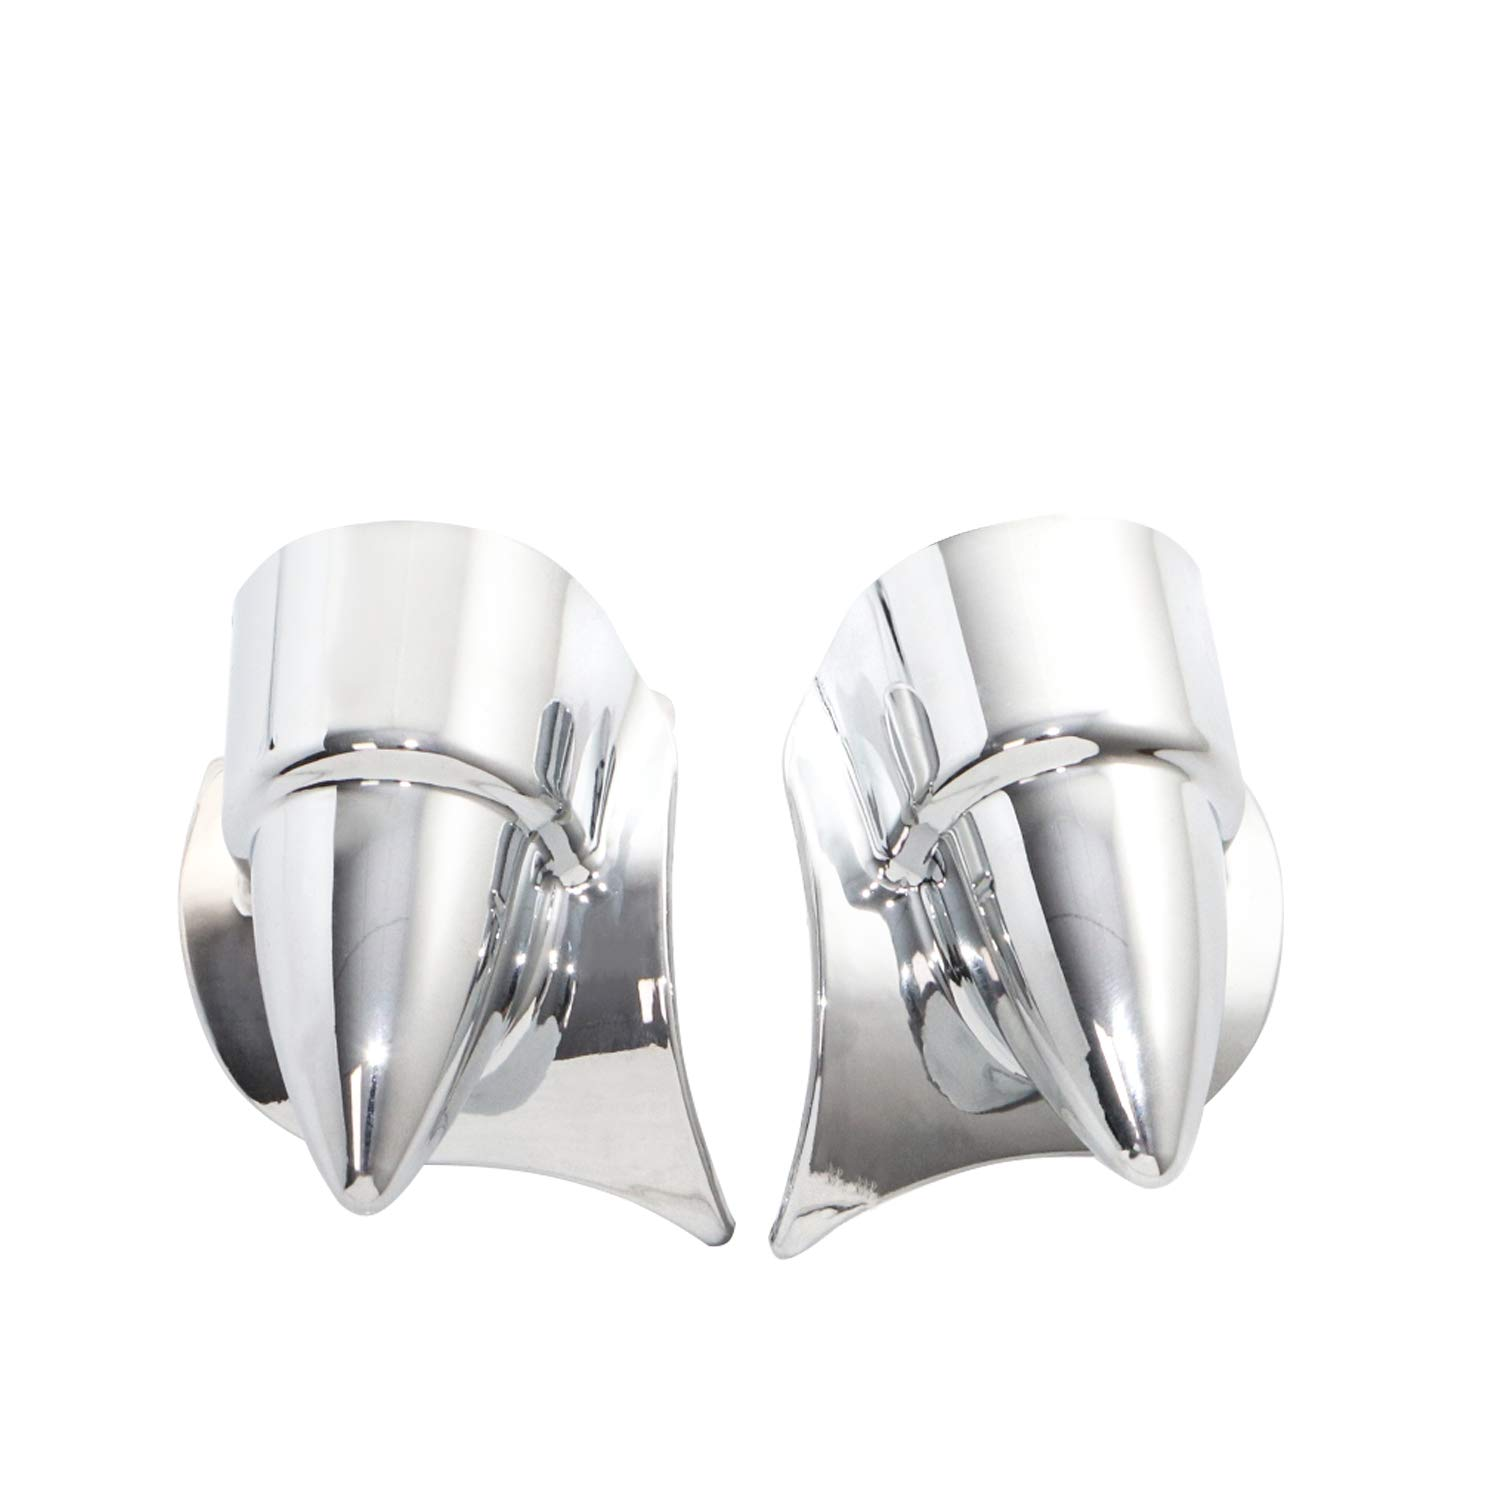 Senkauto Fork Lower Leg Deflector Shield Fender and Nut Cover For Harley Touring Electra Road Street Tri Glide 2000-2013 Chrome